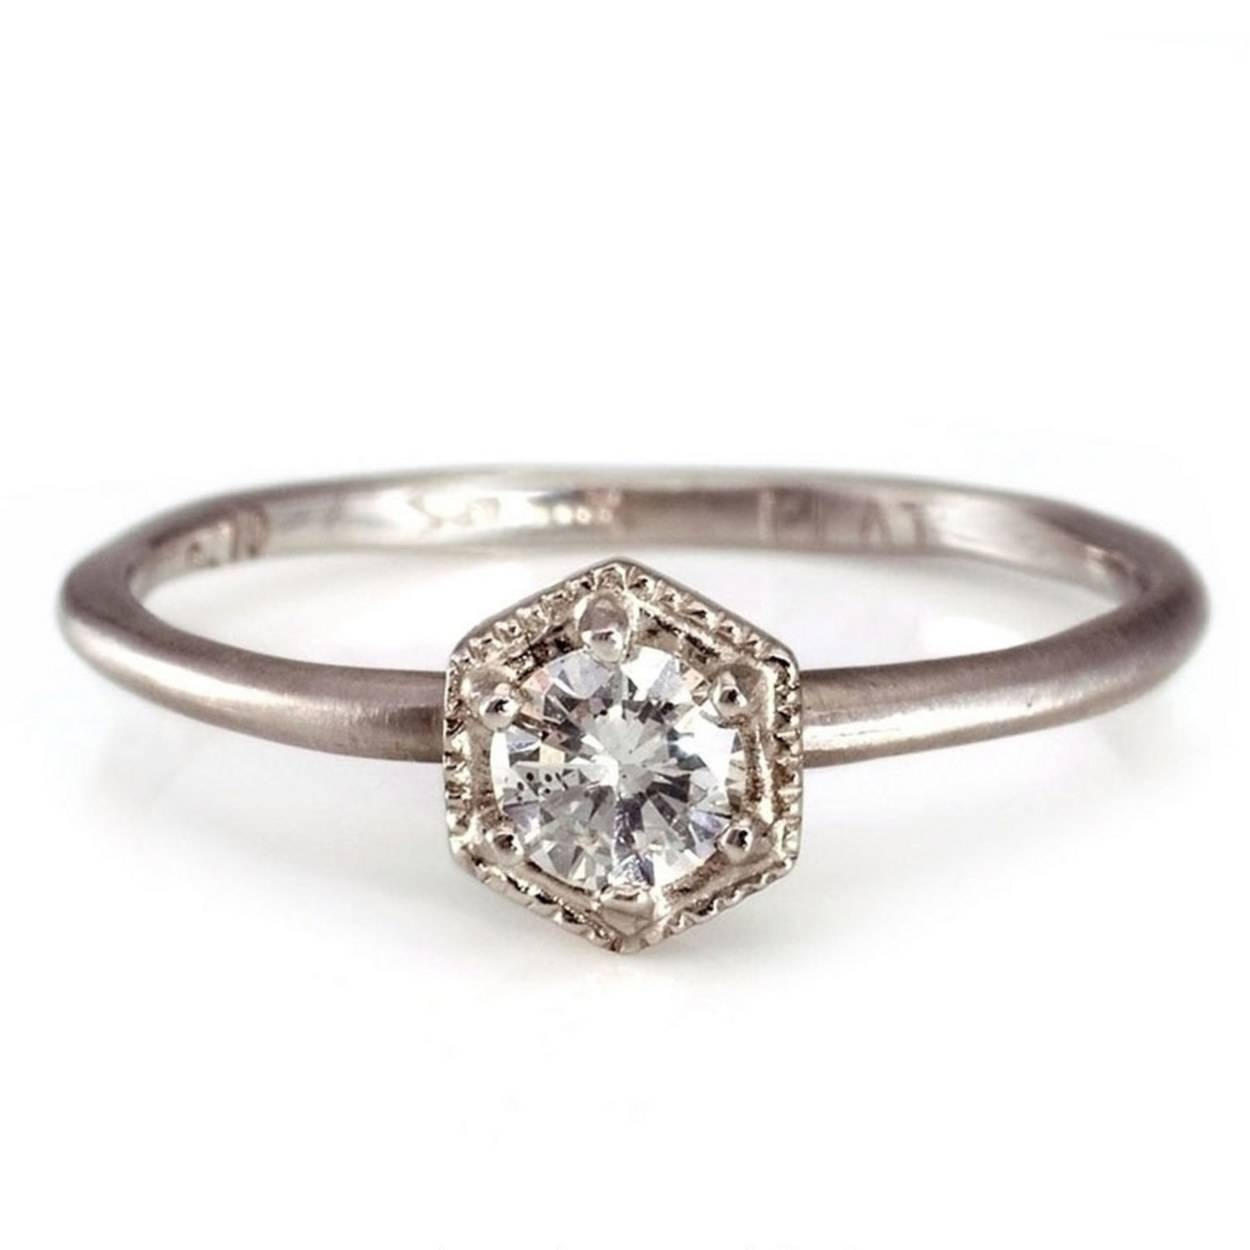 Affordable Engagement Rings Under $1,000 | Glamour With Regard To Diamond Engagement Rings Under  (View 1 of 15)